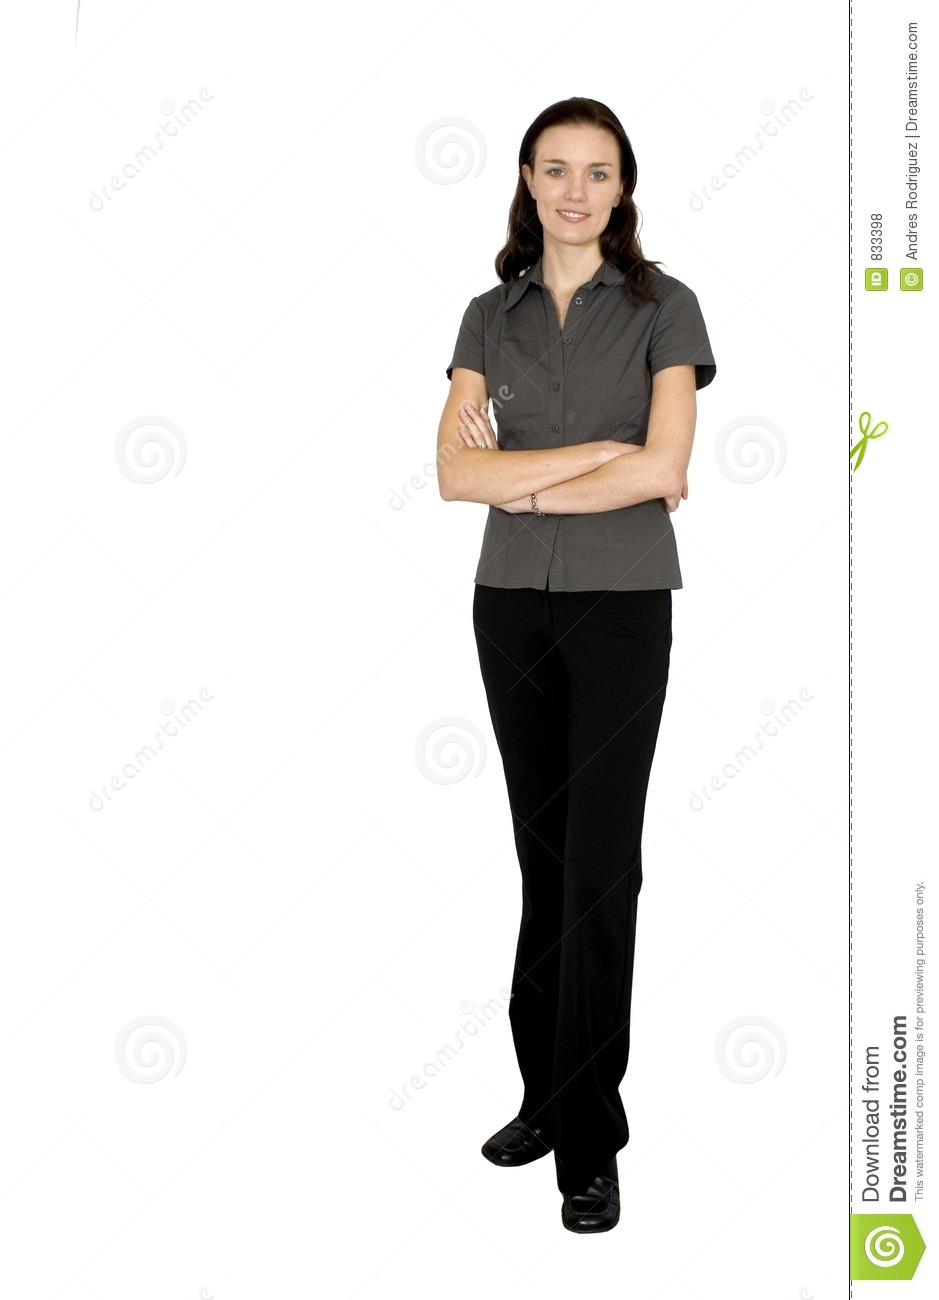 Business woman full body stock photo. Image of confident ...